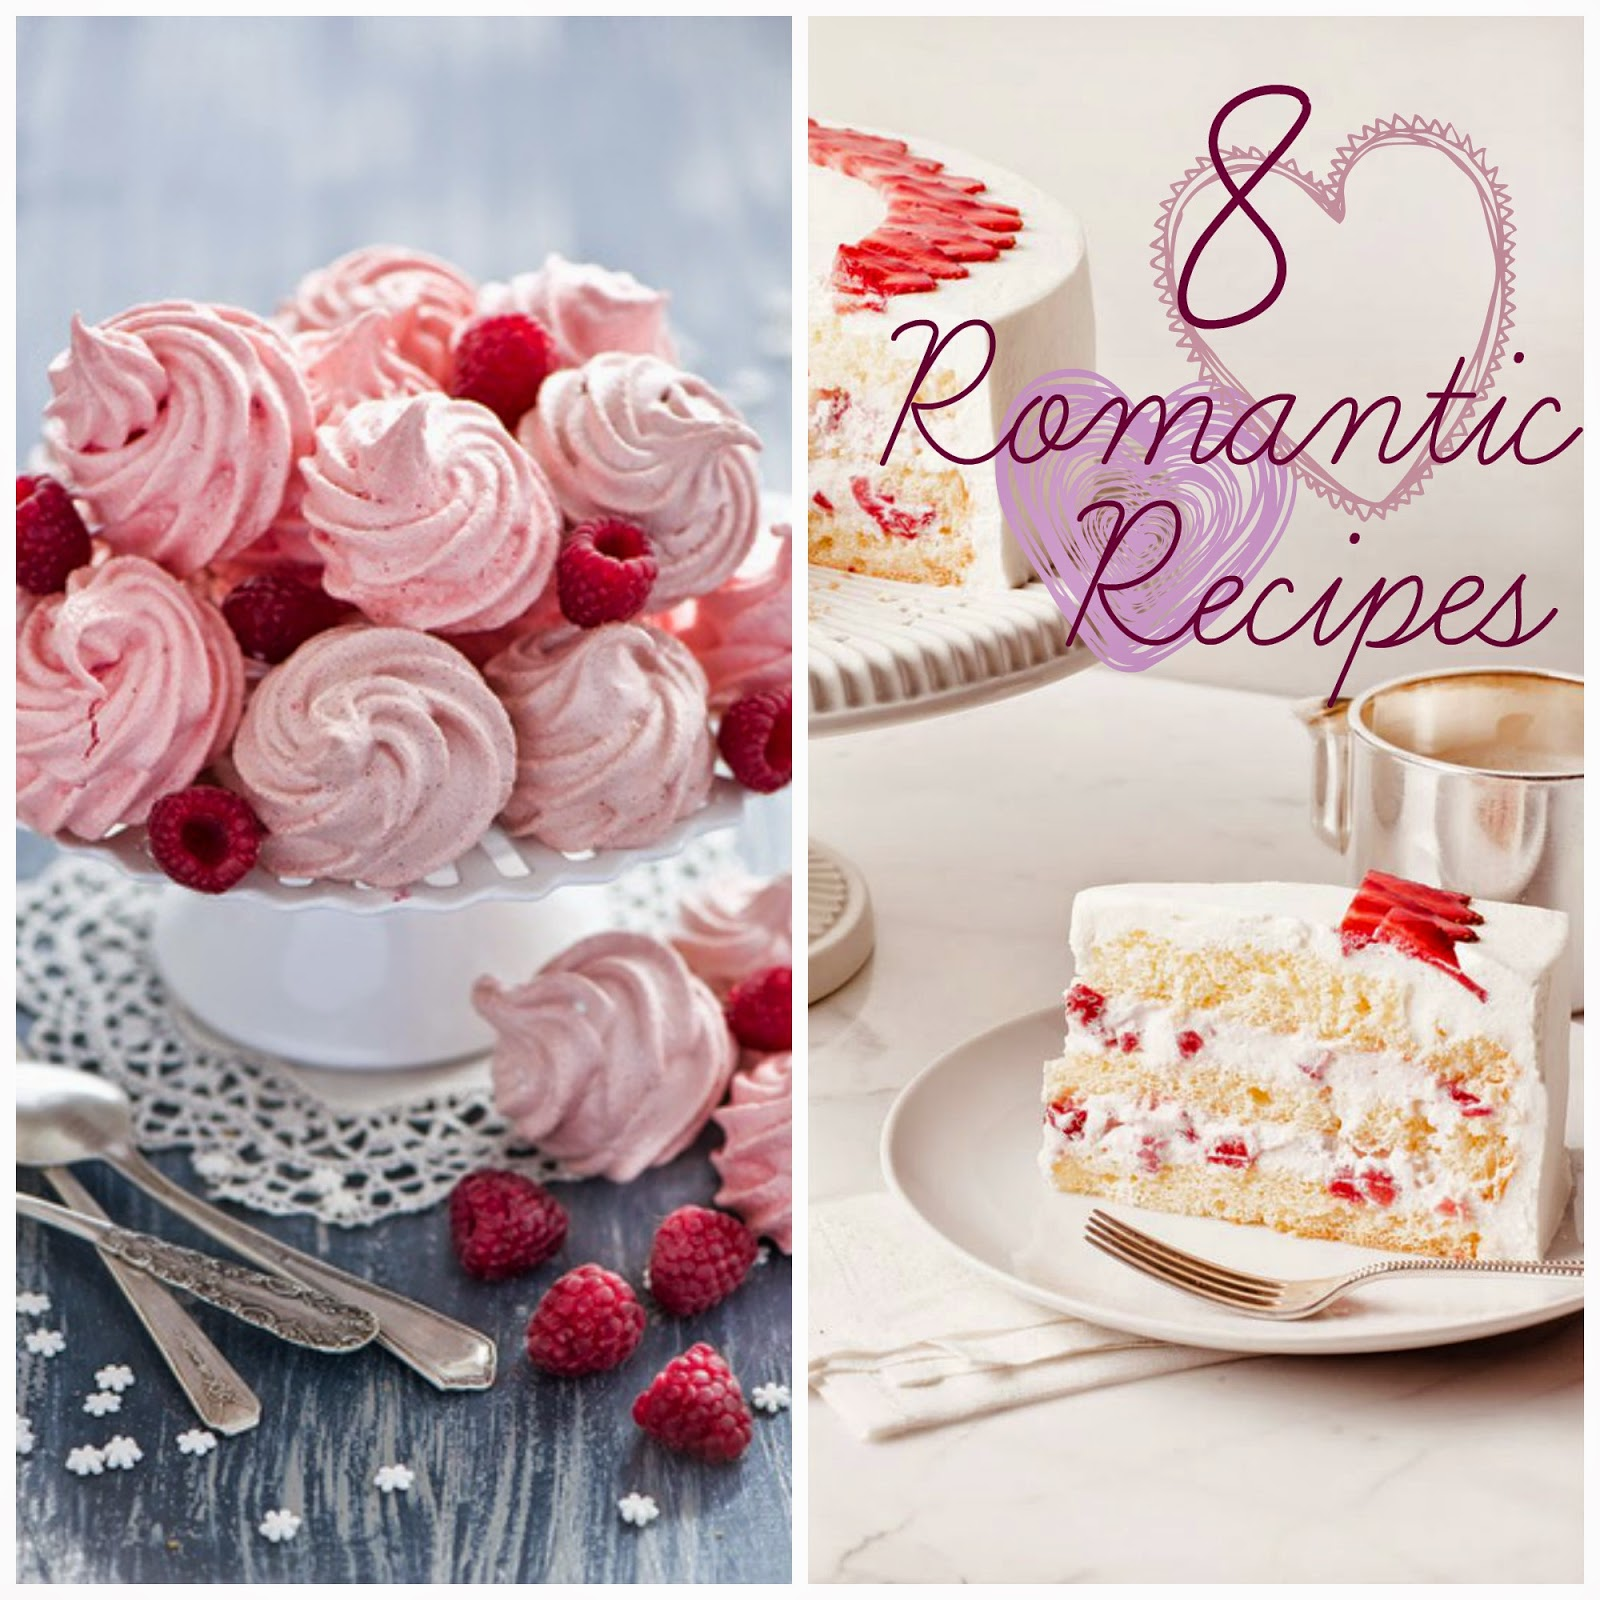 raspberry meringue swirls and strawberry shortcake - 8 romantic recipes